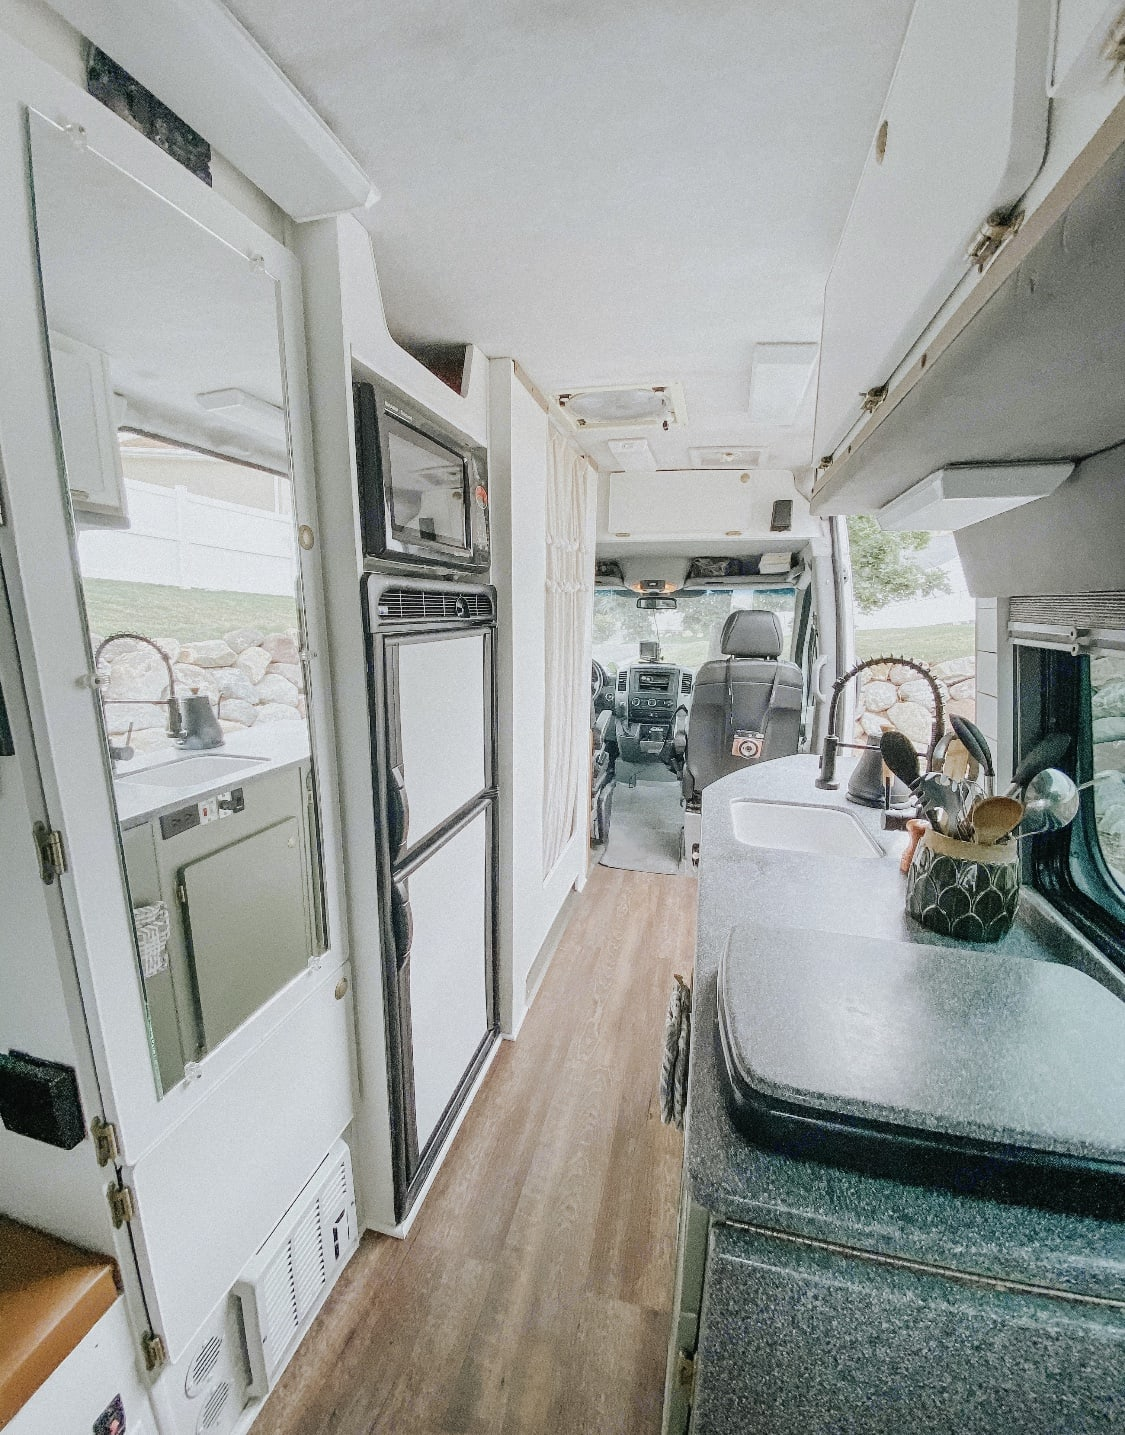 Double burner stove, kitchen sink, large fridge/freezer, and an entire pantry space available for your use!. Mercedes-Benz Sprinter 2007